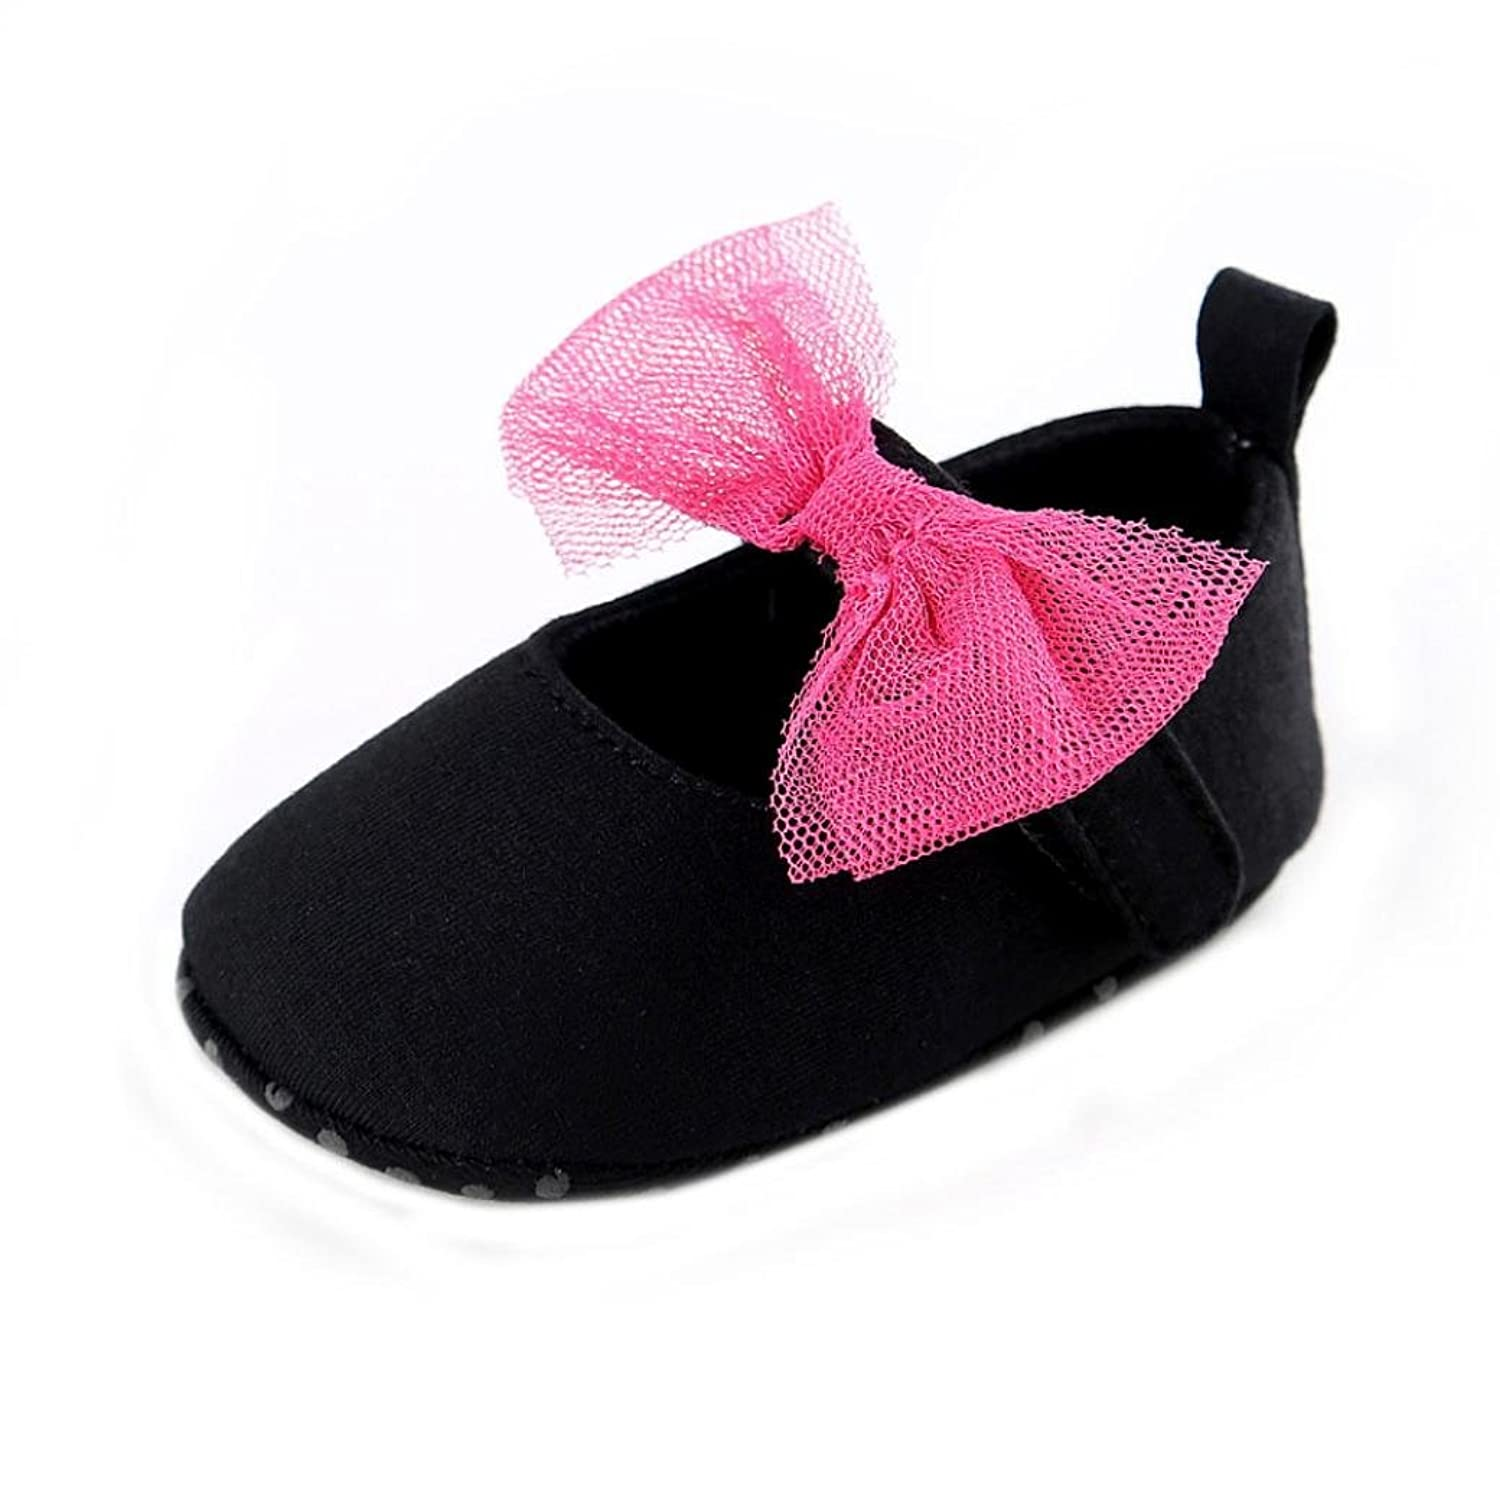 Amiley Baby boots shoes , Baby cute Infant Kids Girl Soft Sole Crib Toddler Newborn Shoes 2016 winter